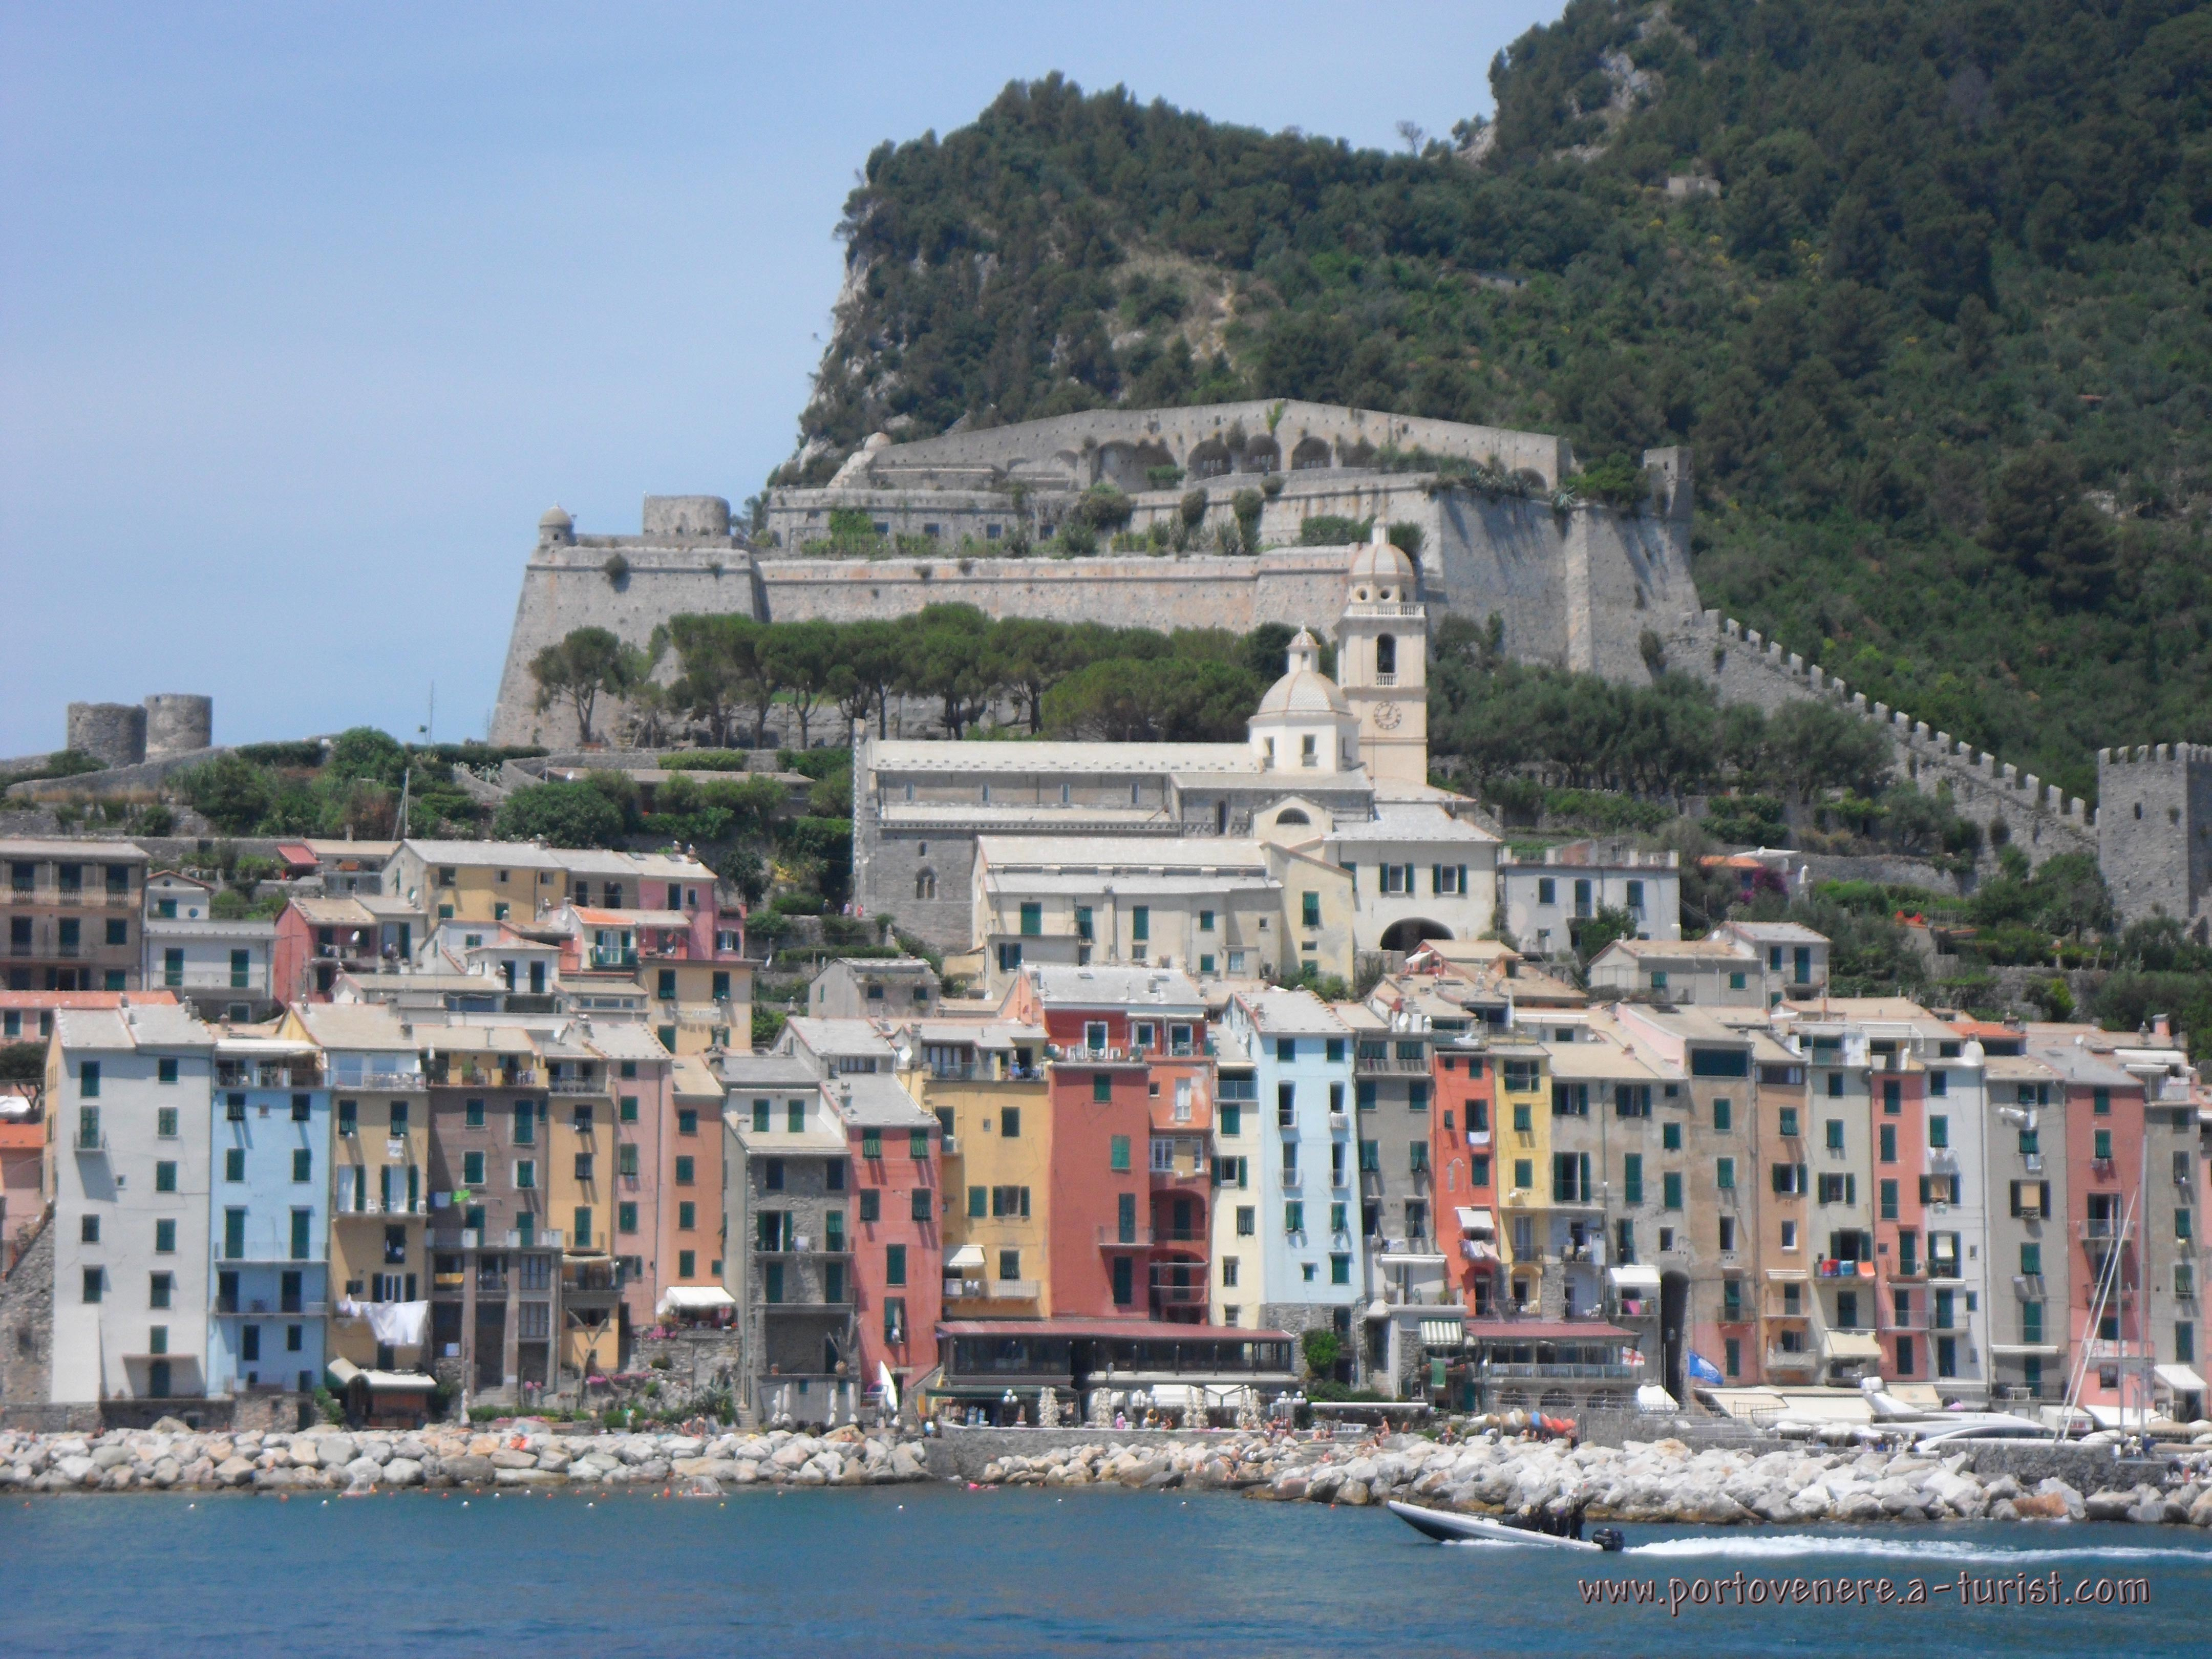 Portovenere - Panoramic view from the island of Palmaria<br>4320x3240, 1.58 MB